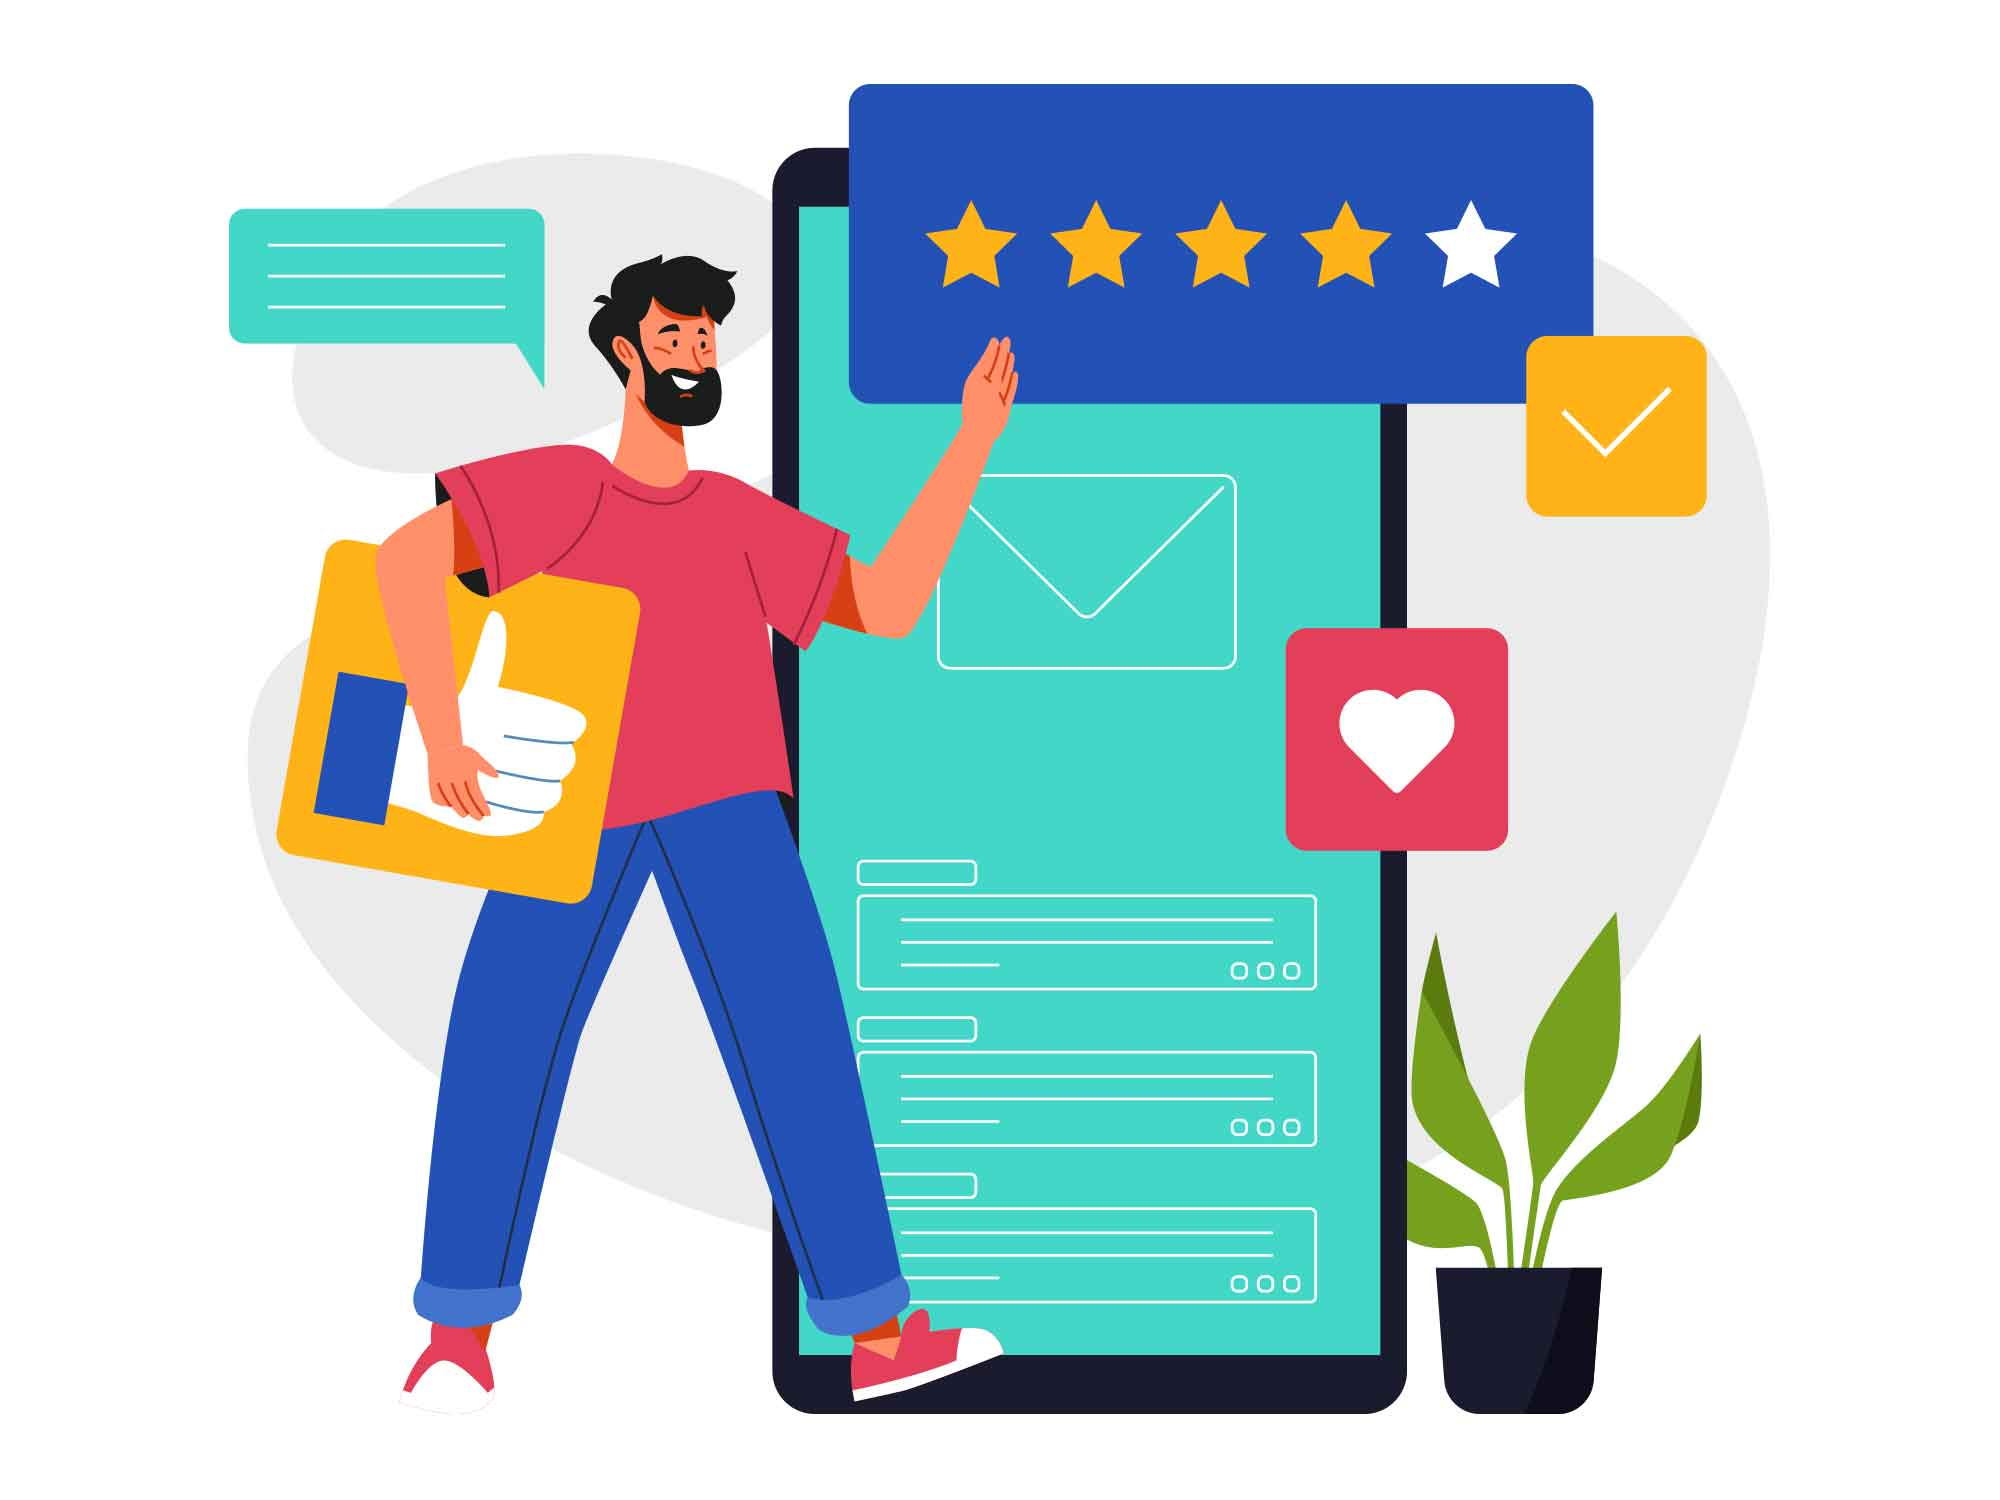 Feedback Vector Illustration